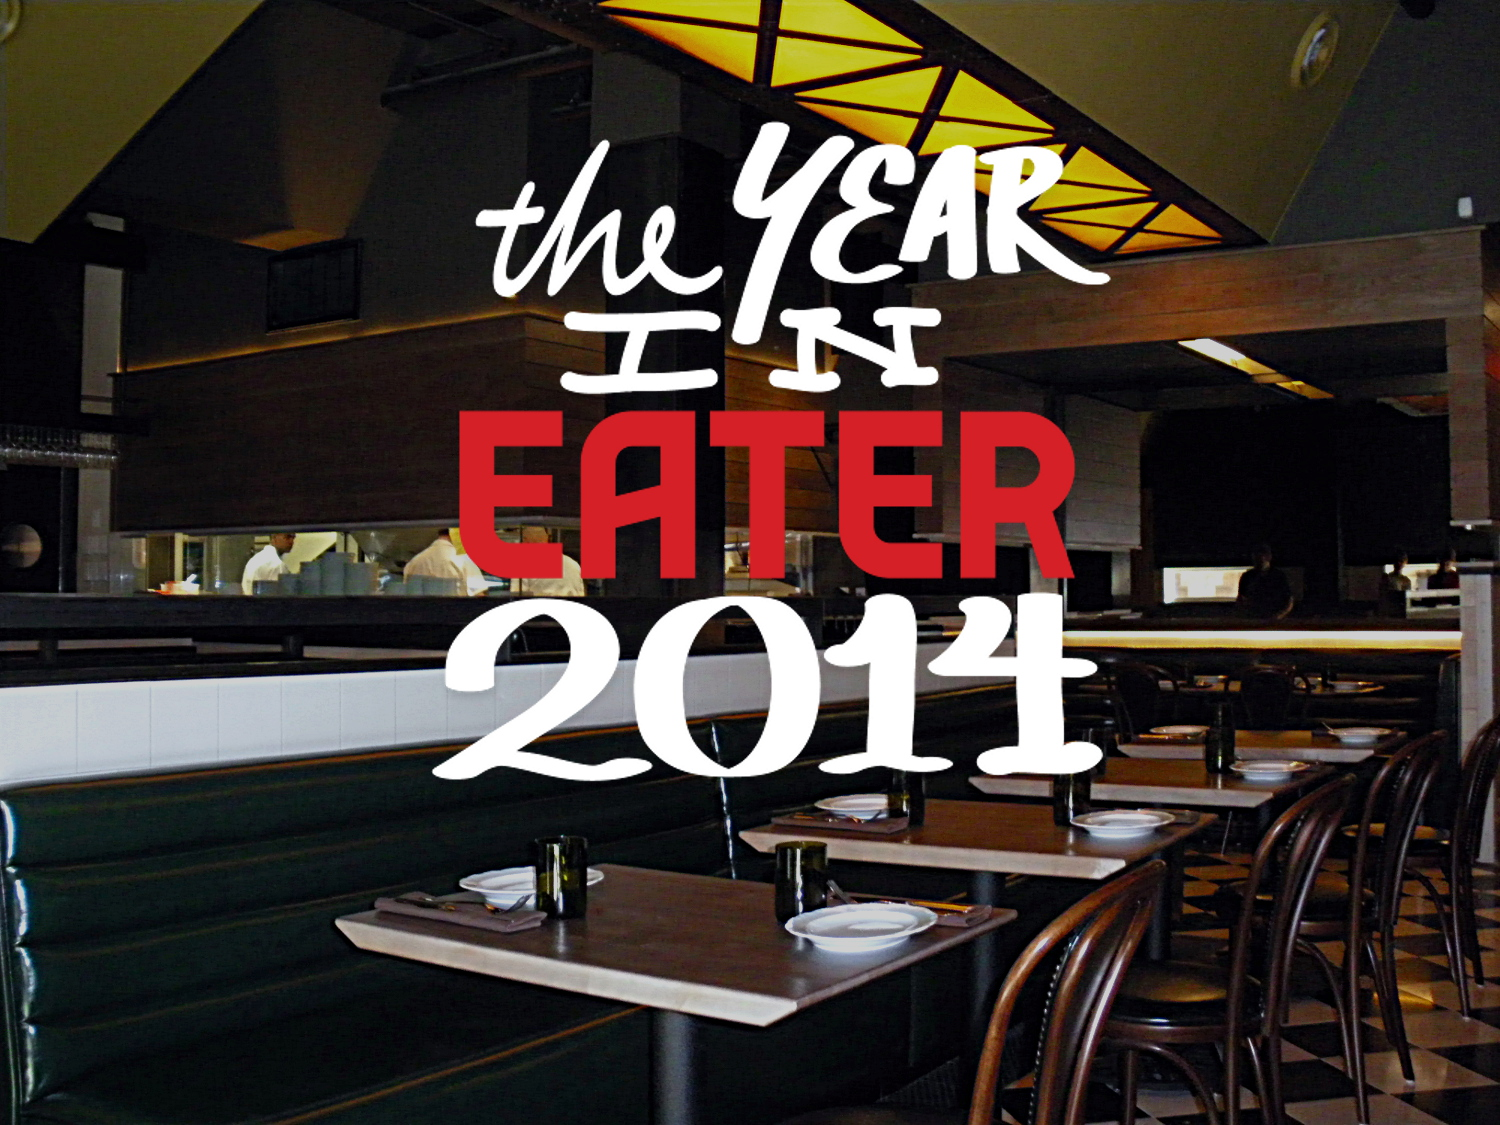 The gefilte fish at Abe Fisher took us all by surprise this year.